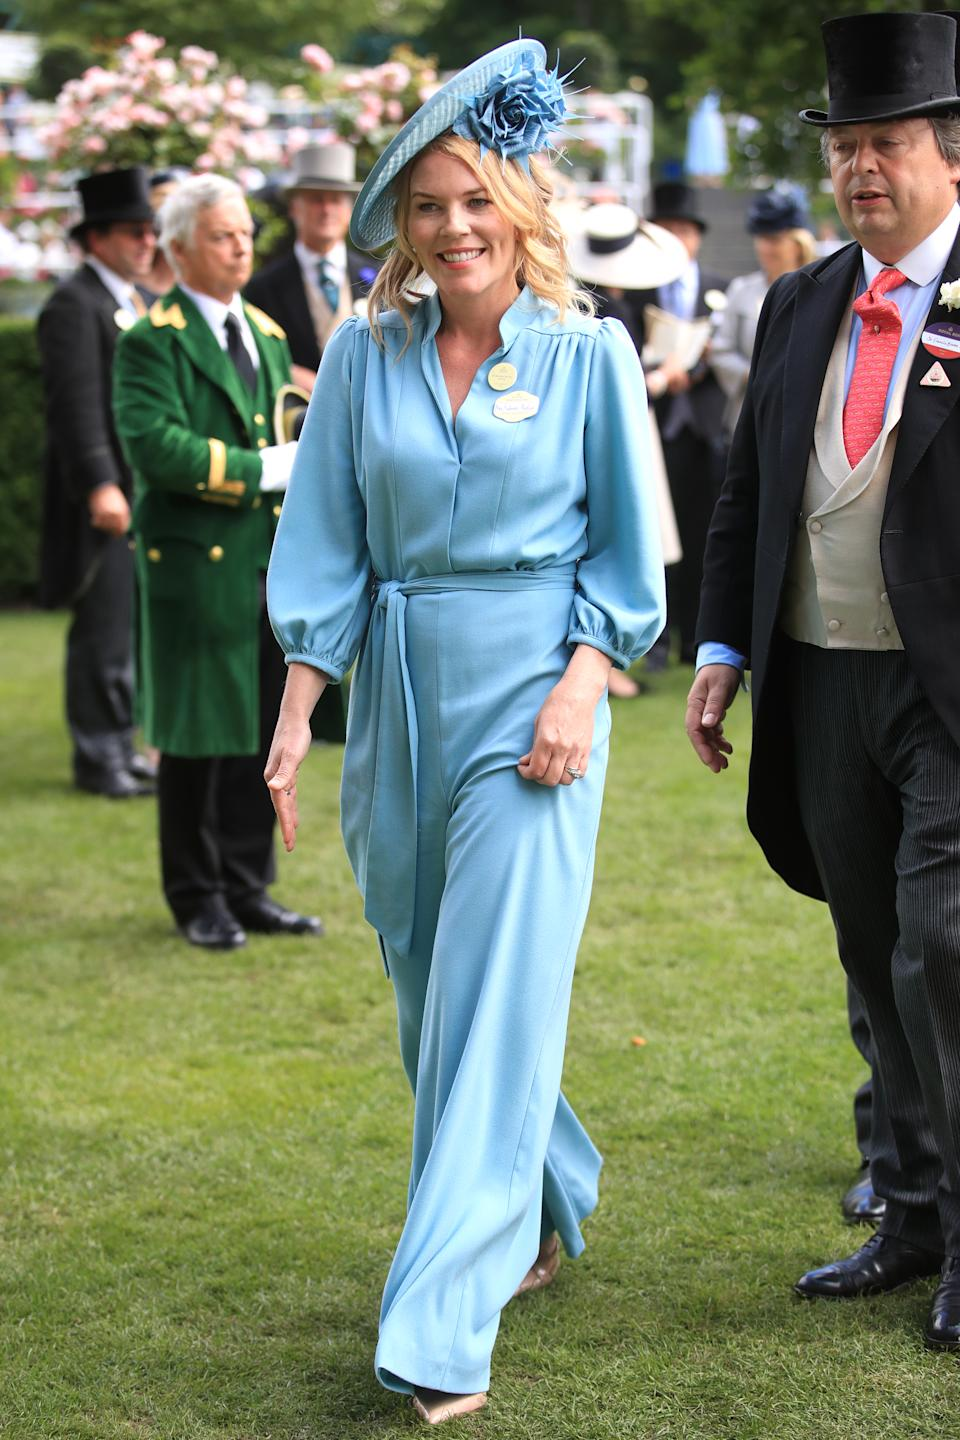 """Autumn Phillips looked chic in a bespoke powder blue jumpsuit by Claire Mischevani (available in white <a href=""""https://fave.co/2Kz7vhh"""" rel=""""nofollow noopener"""" target=""""_blank"""" data-ylk=""""slk:here"""" class=""""link rapid-noclick-resp"""">here</a>) with a hat by Sally Ann Provan. <em>[Photo: Getty]</em>"""